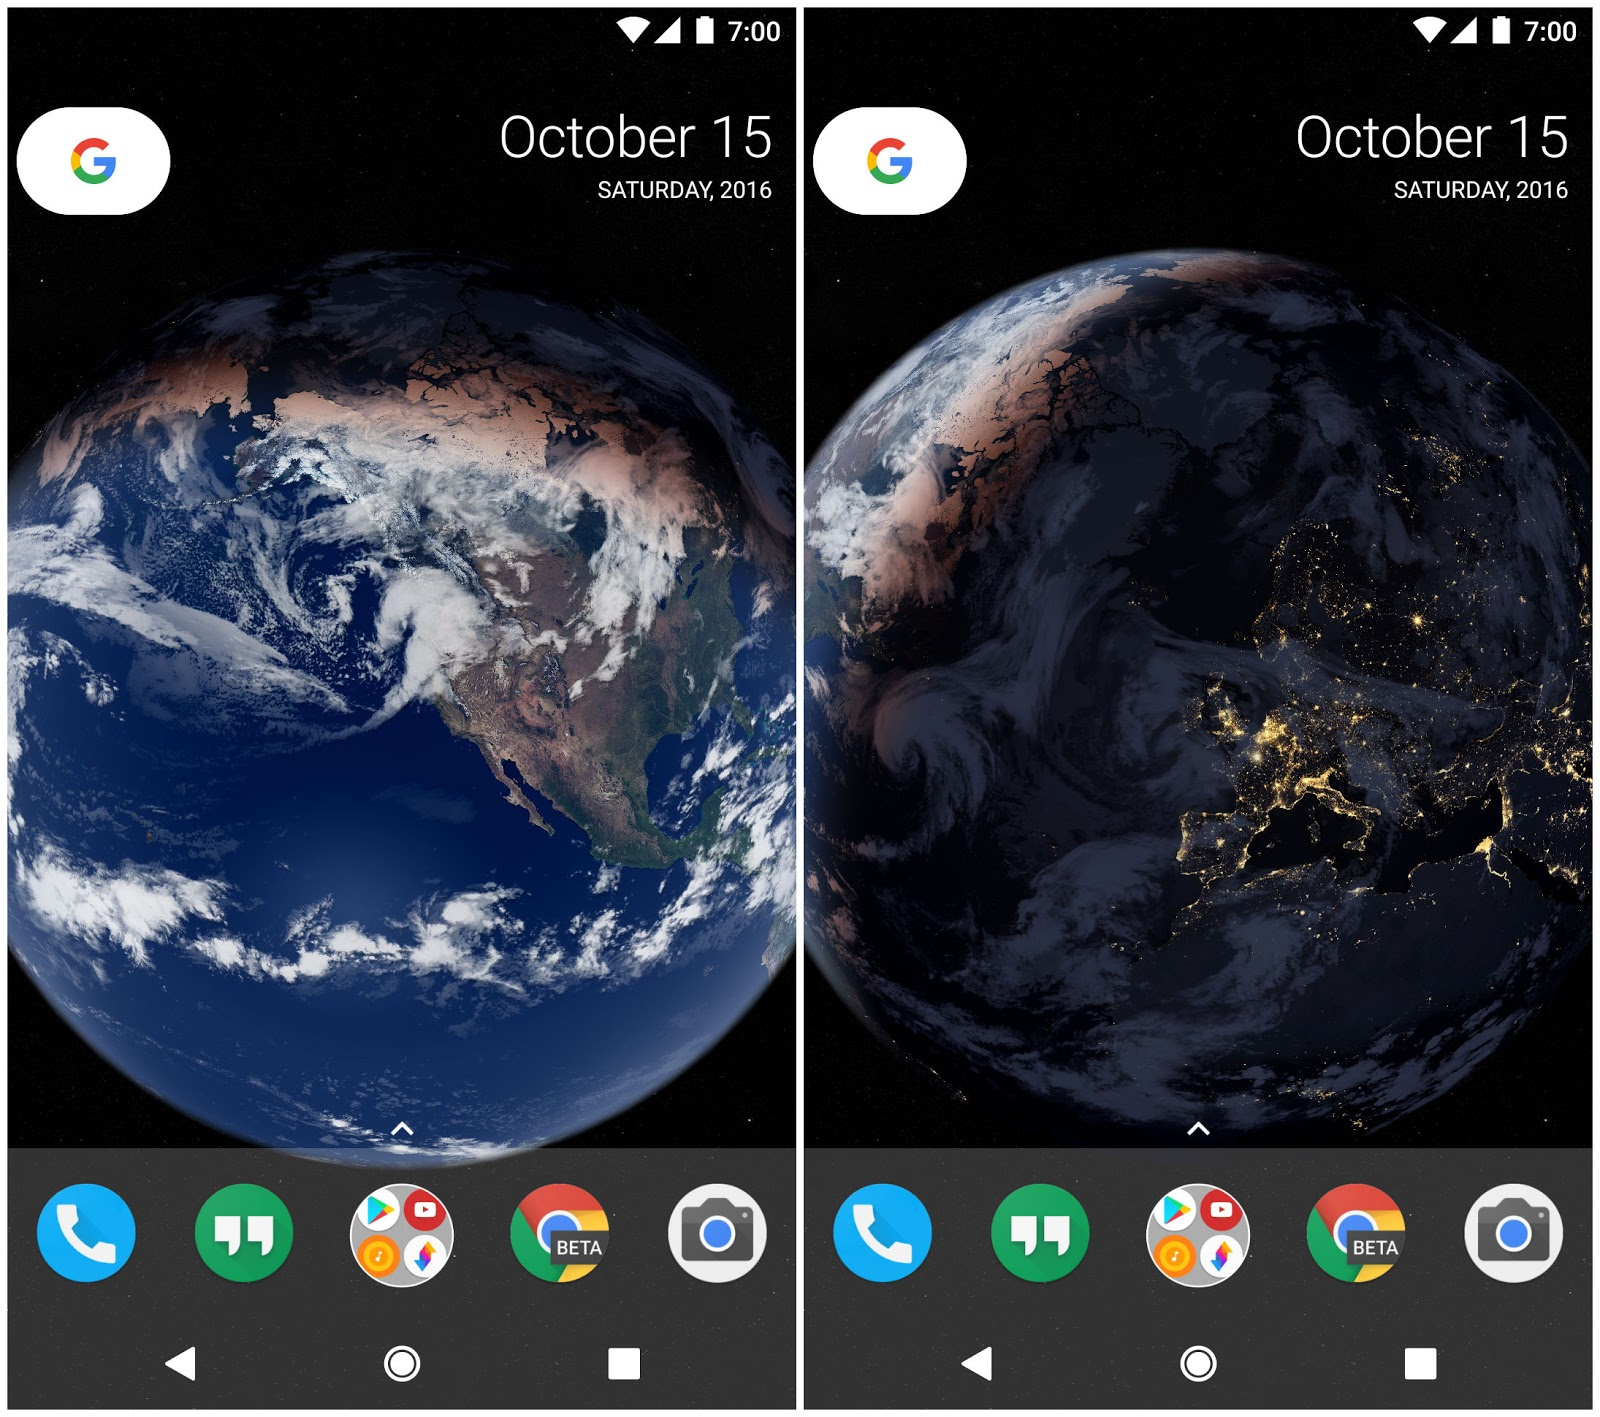 live wallpaper locations included in this app